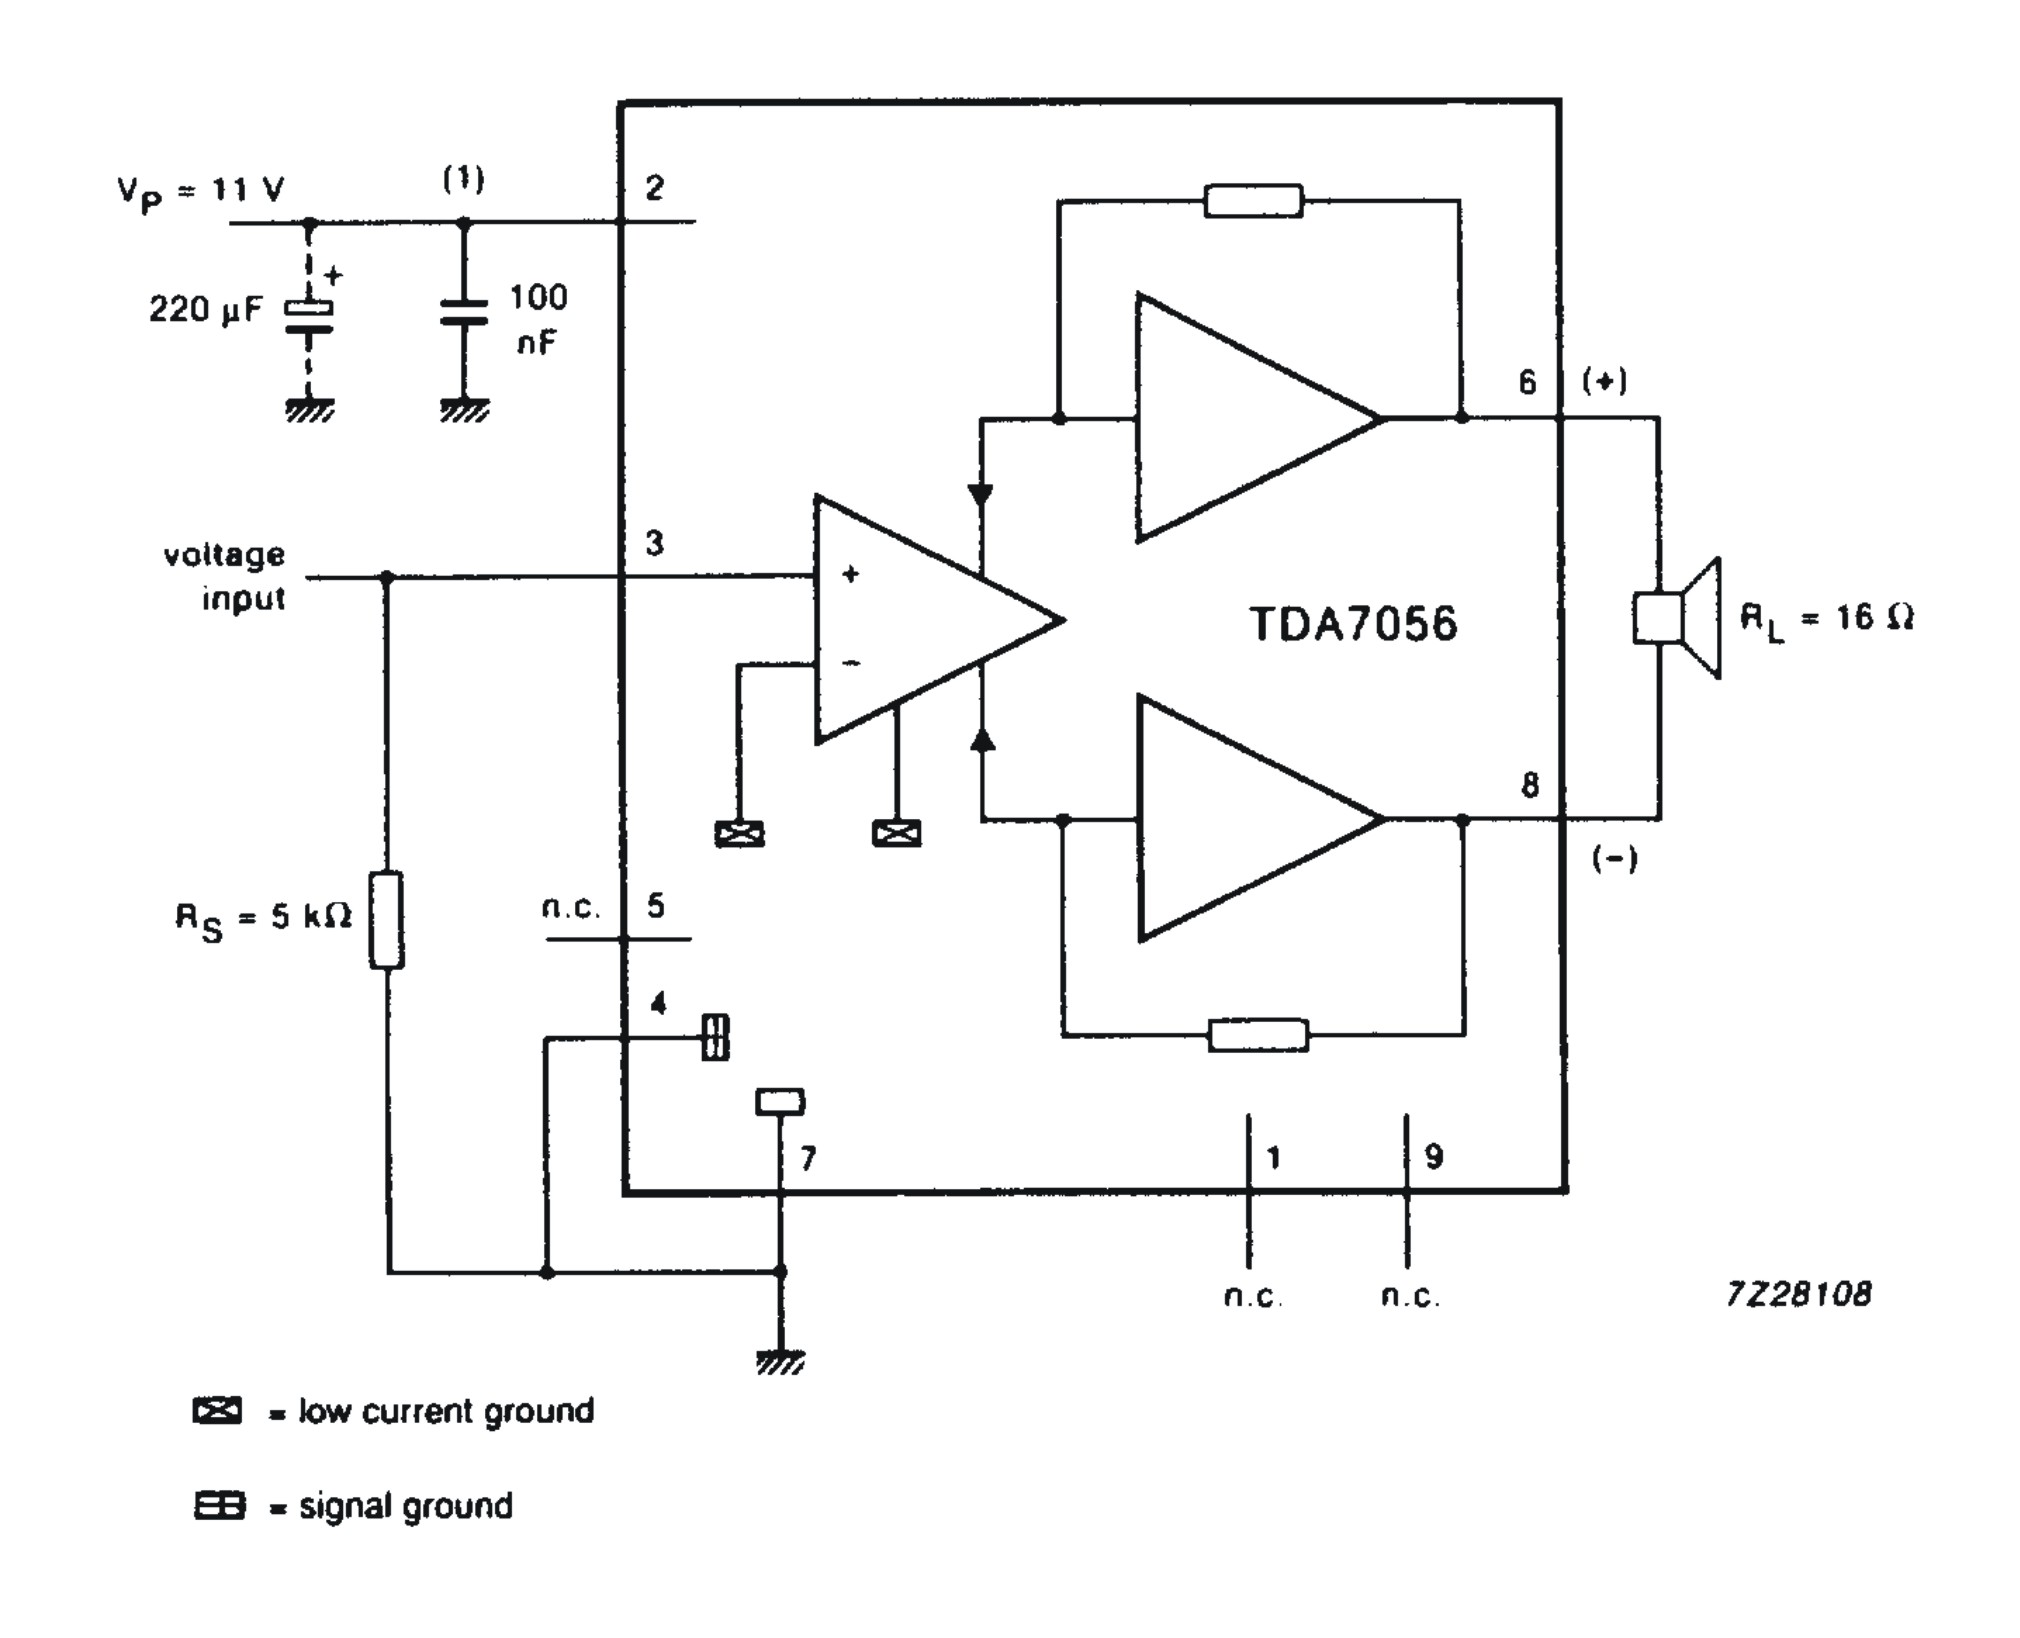 Diagram Amplifier Tda2050 32w Hi Fi Audio With Circuit Source Freecircuitdiagram For Mono Output Application Tda7056 Ic Can Be